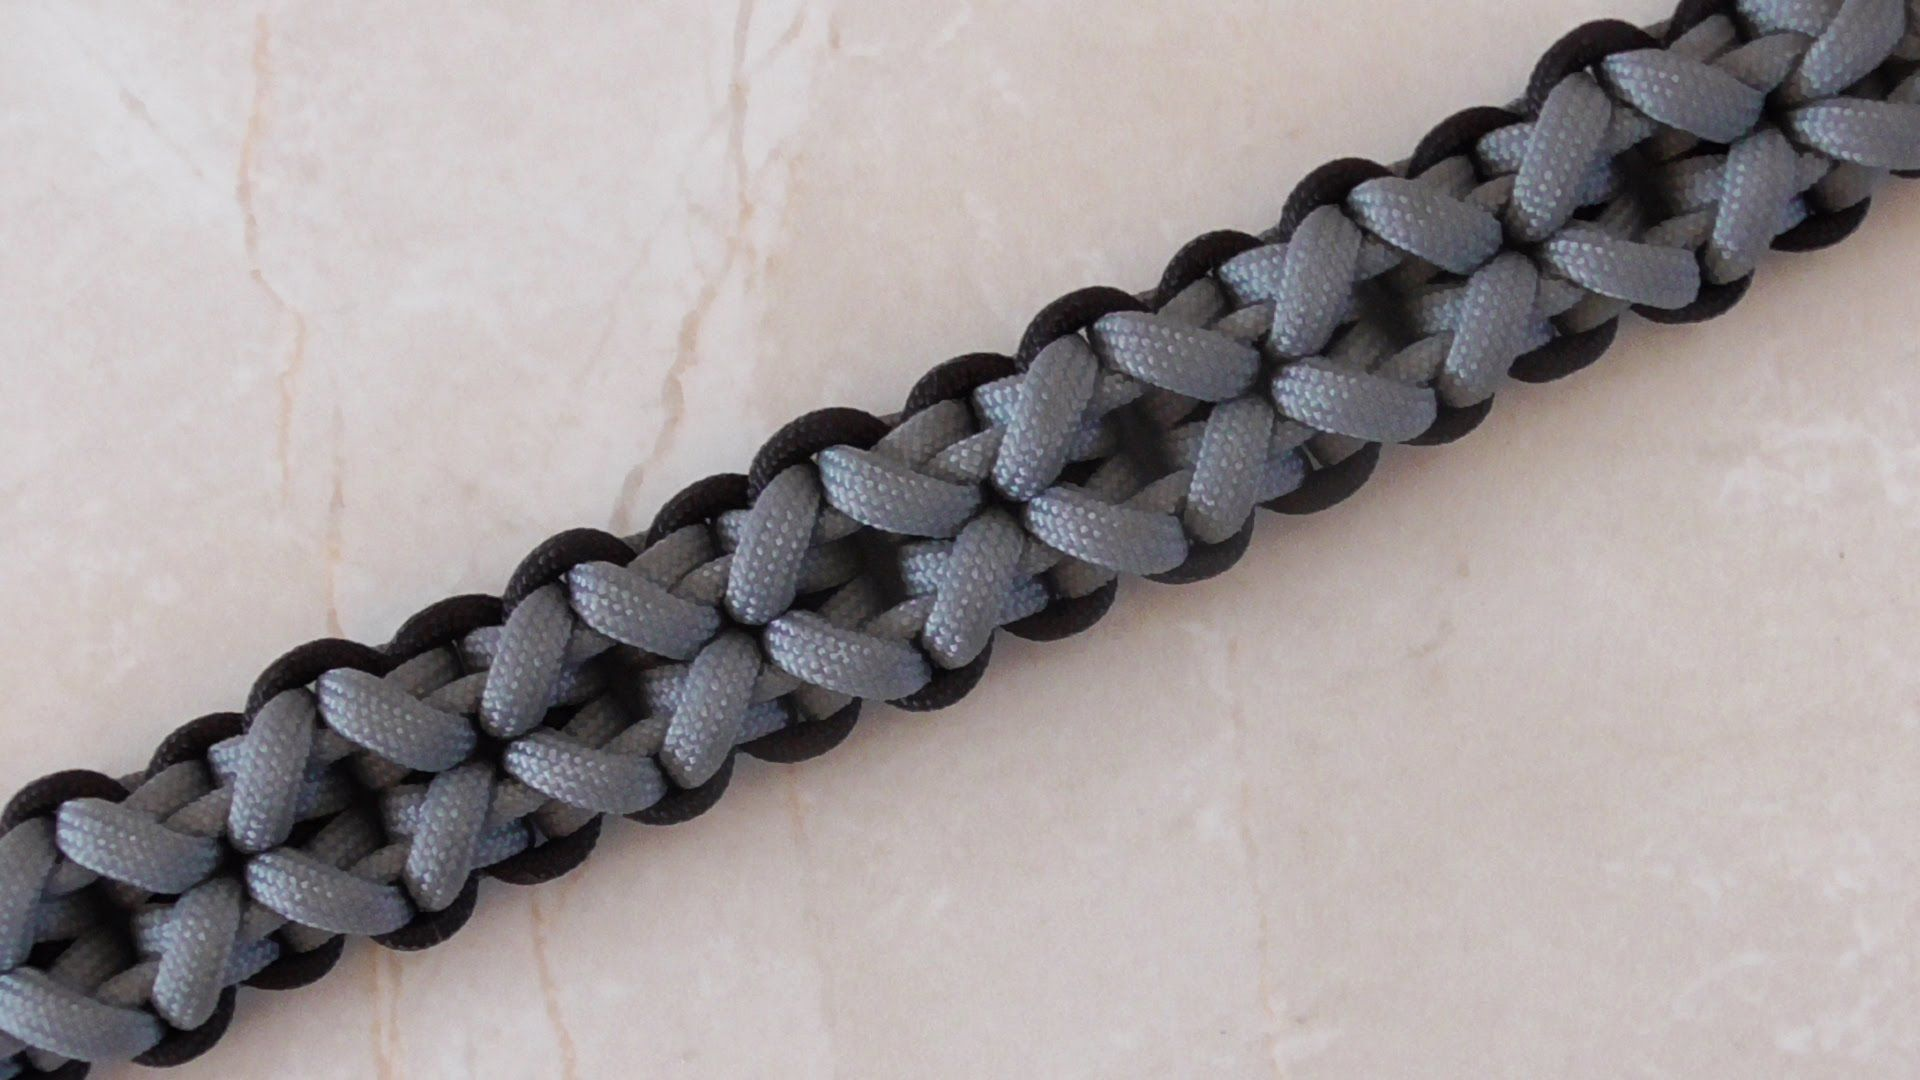 Instructions For How To Make A Clove And Dagger Paracord Survival Bracelet With No Buckle In This Step By Diy Video Tutorial Two Color 550 Cord